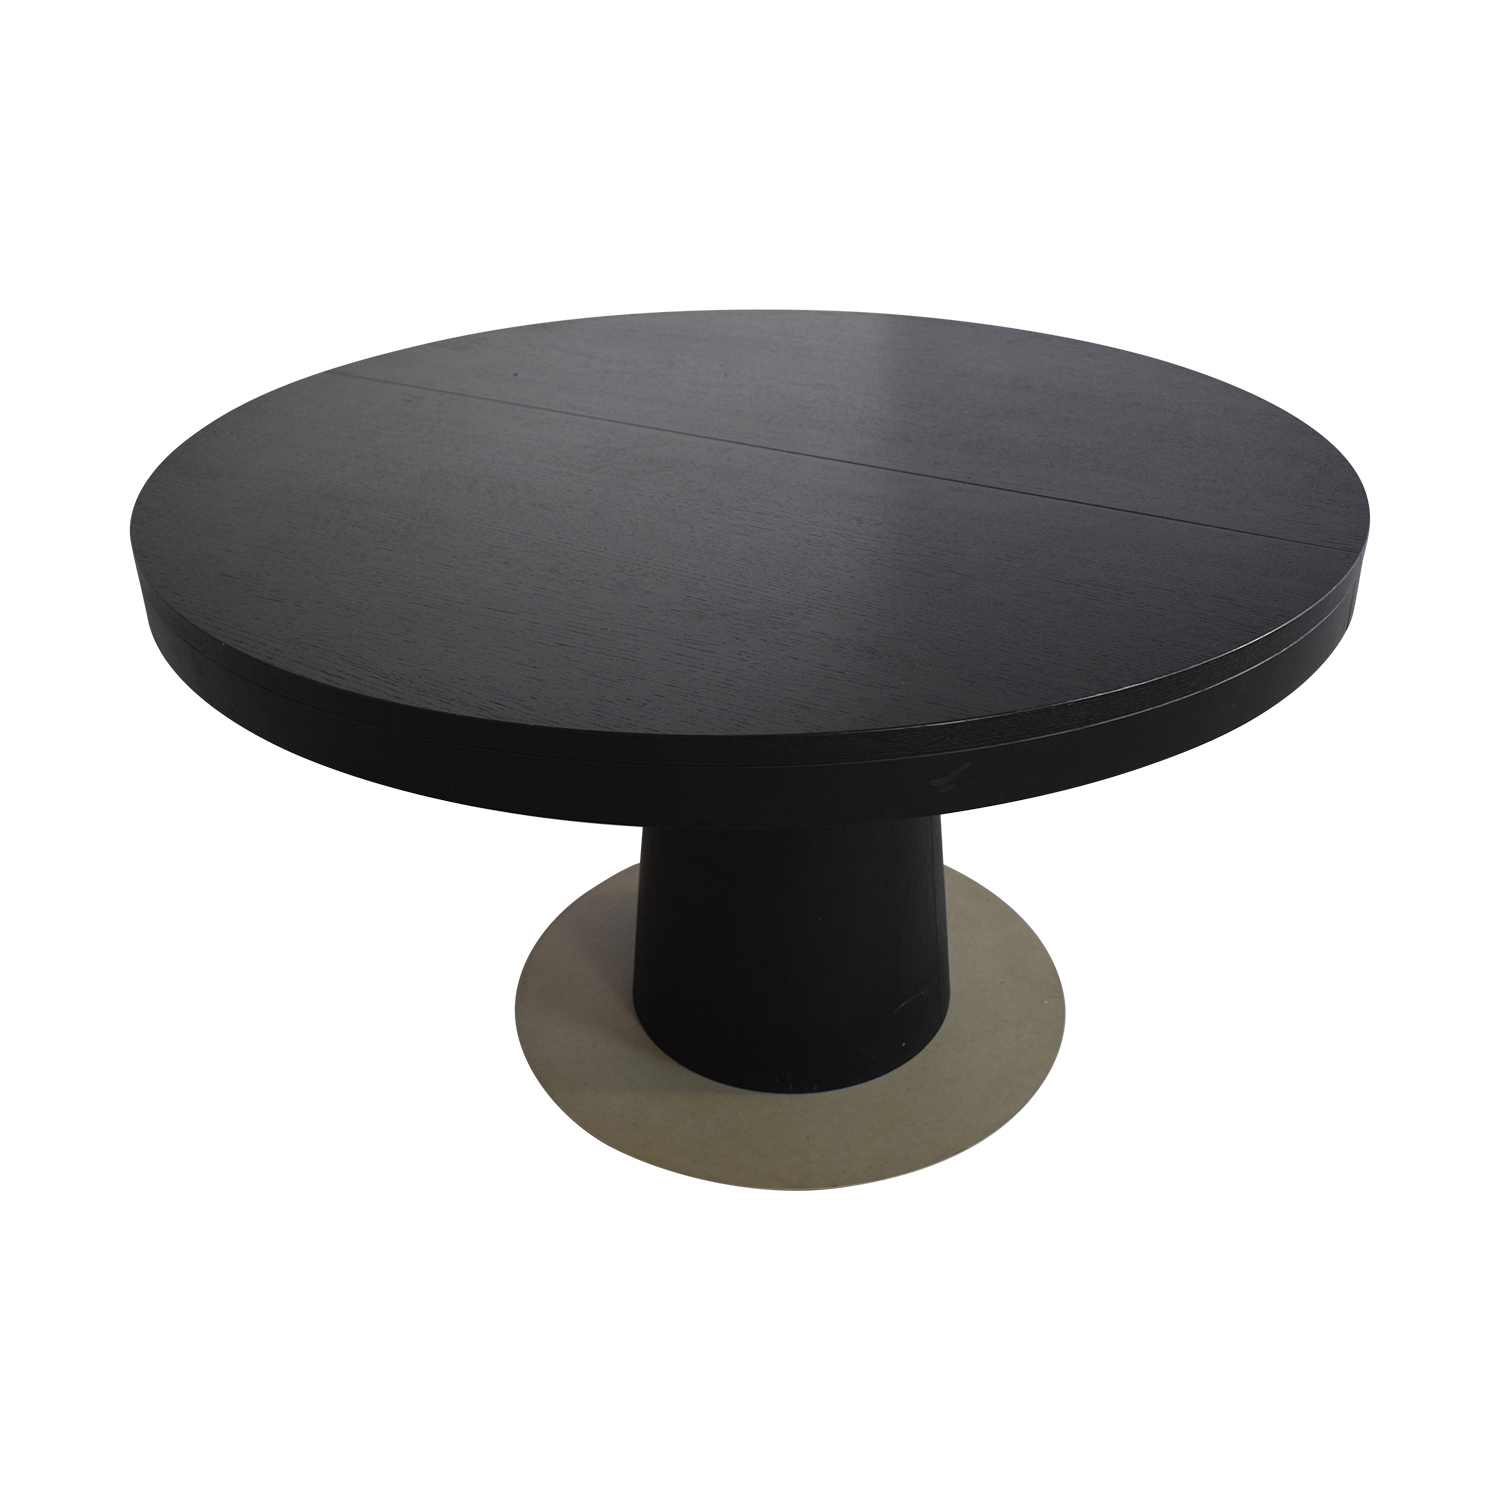 BoConcept BoConcept Granada Extendable Dining Table used